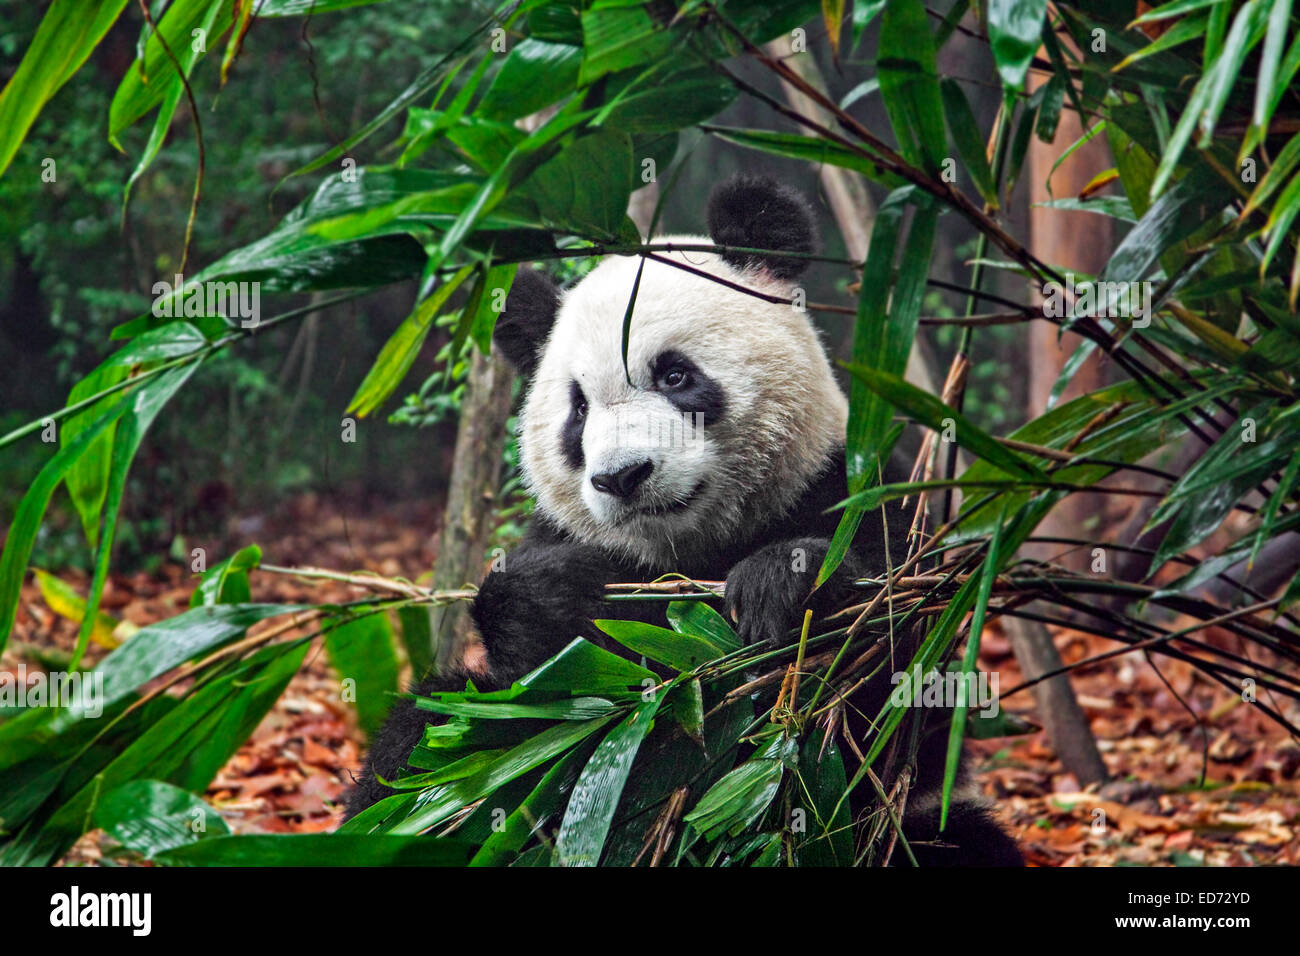 Giant panda (Ailuropoda melanoleuca) eating bamboo in the Chengdu Research Base of Giant Panda Breeding, Sichuan - Stock Image